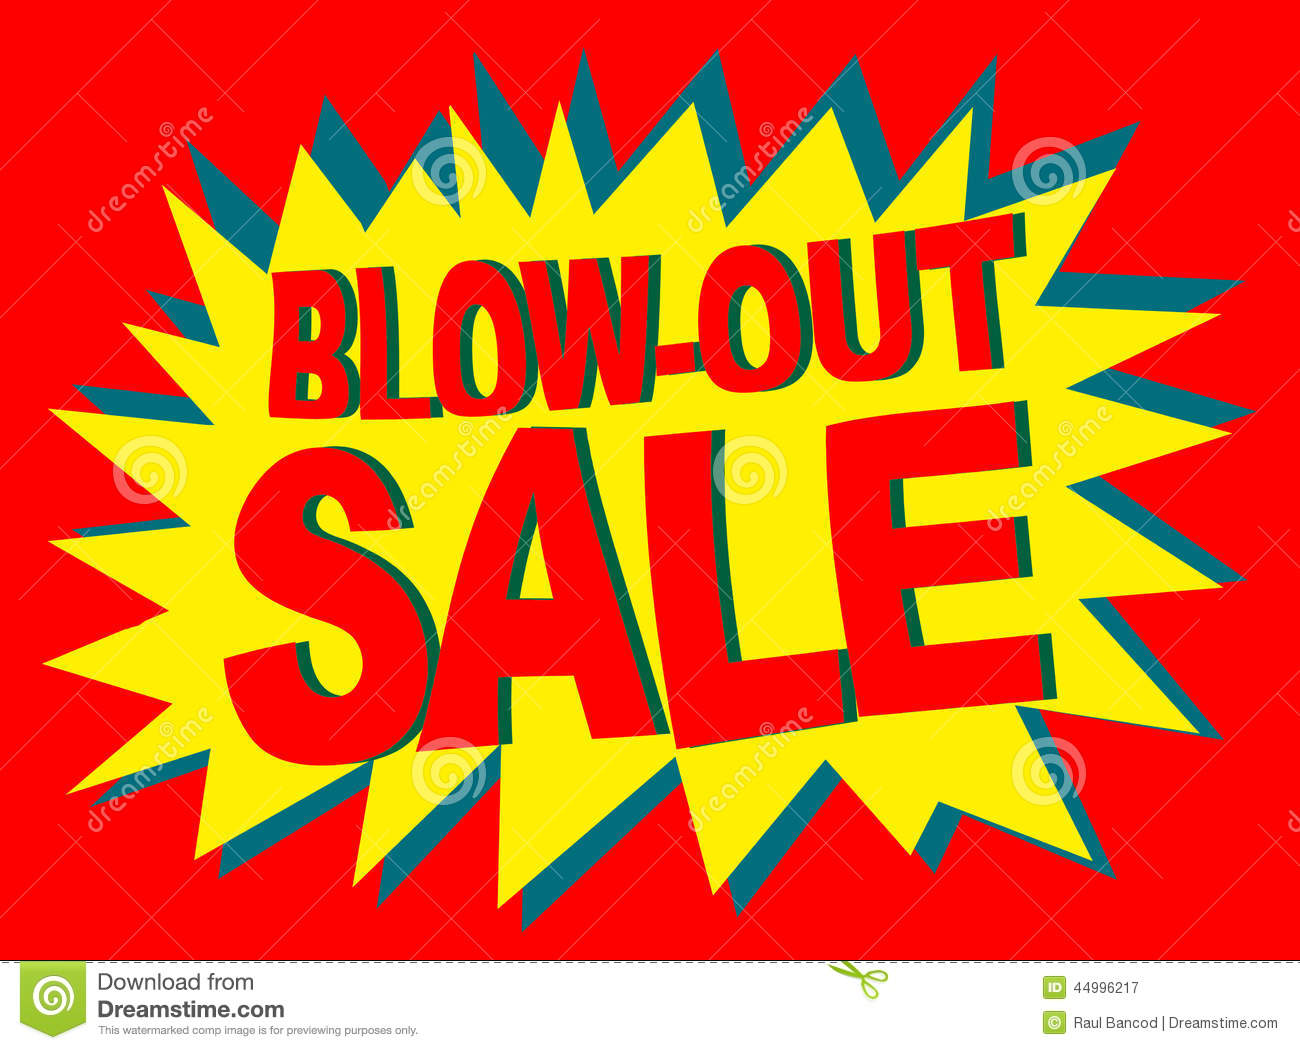 blow out sale stock illustration image 44996217 clipart sound animation and graphics clipart sound animation and graphics